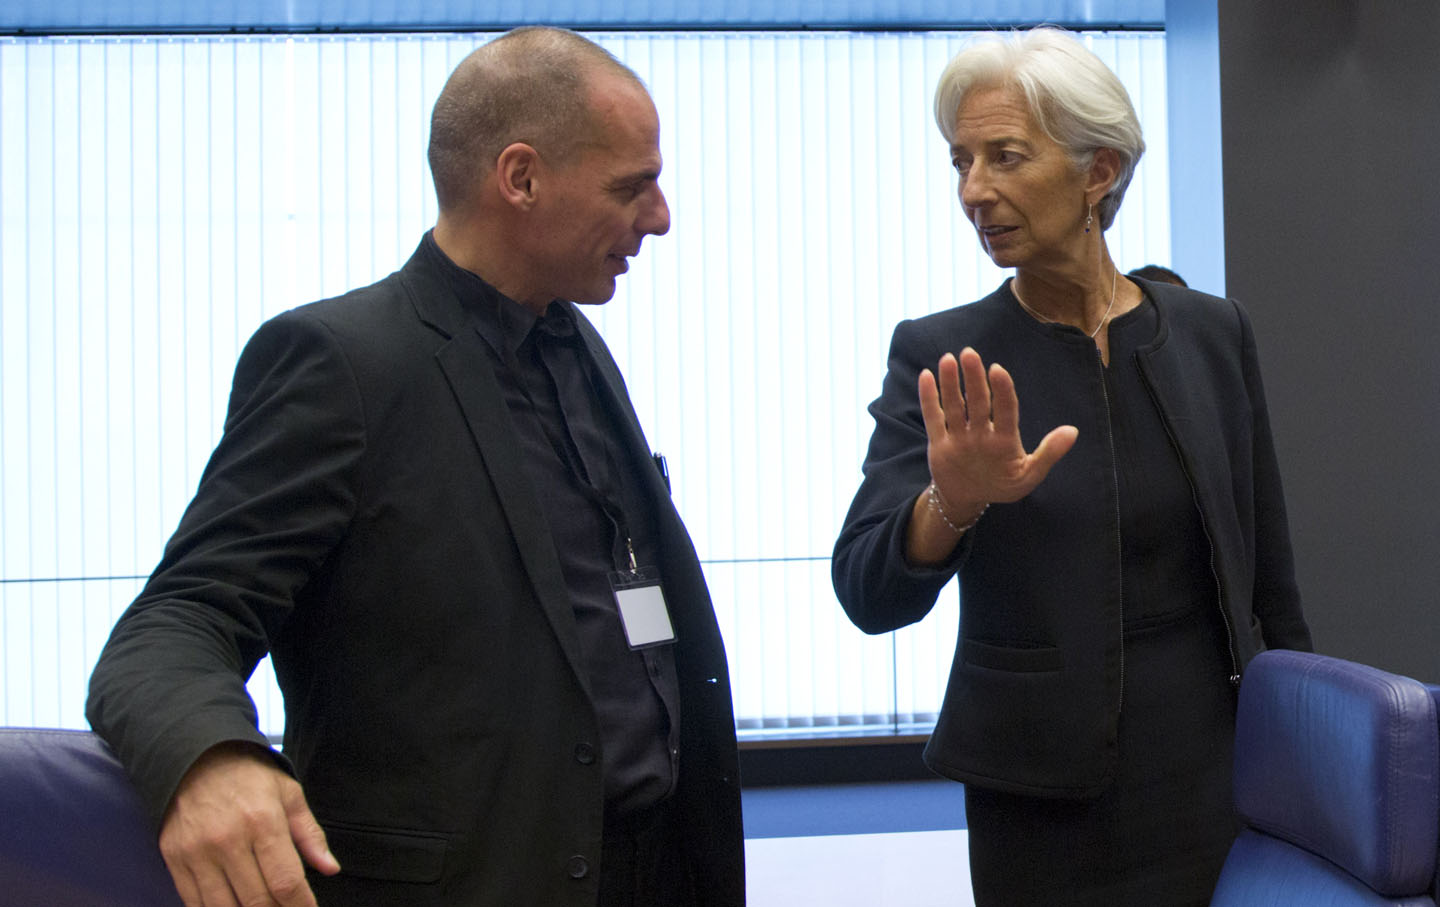 Yanis Varoufakis and Christine Lagarde